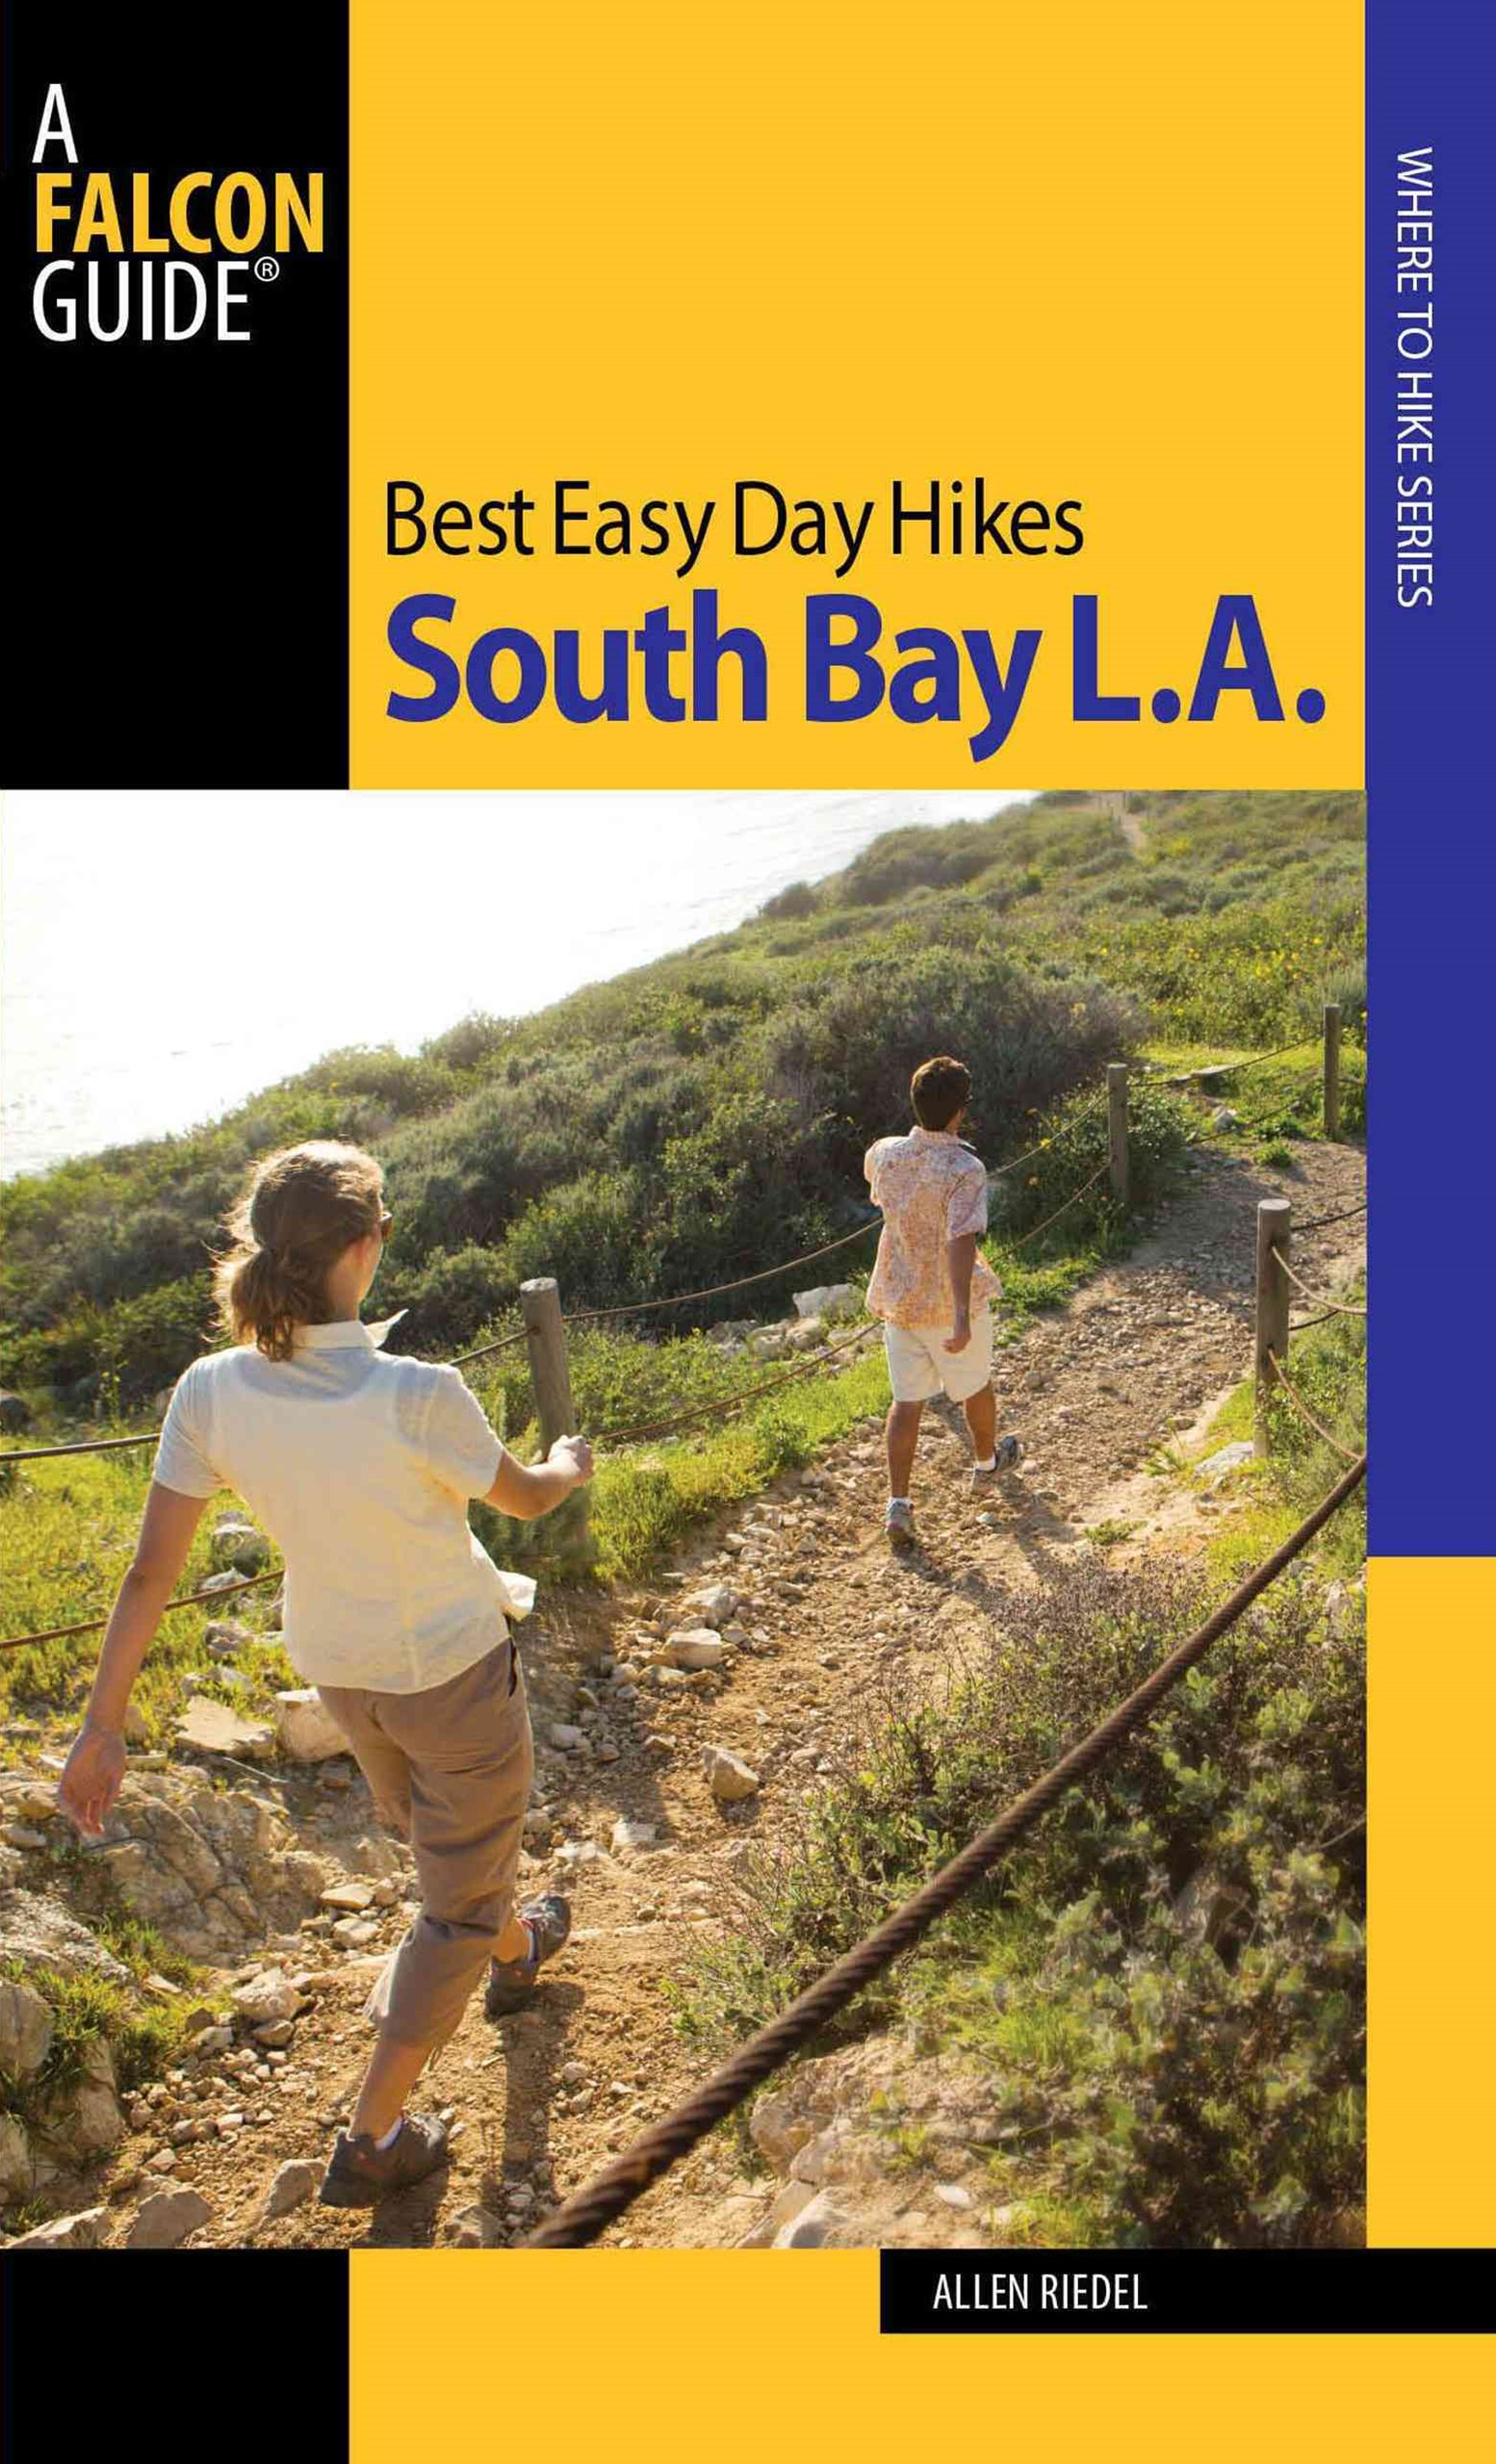 South Bay L. A. - Best Easy Day Hikes